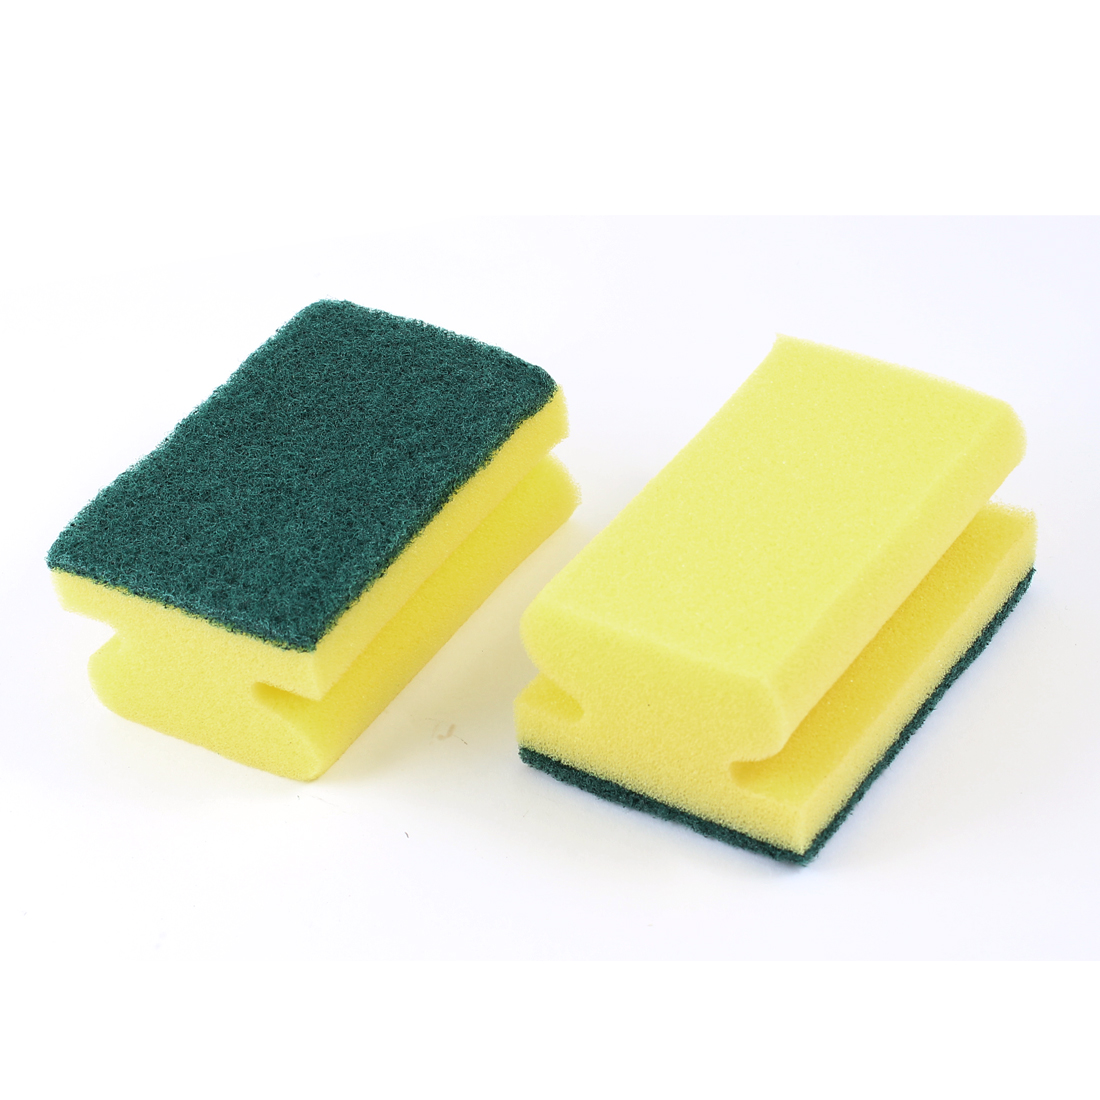 2 Pcs Green Beige Rectangular Sponge Cleaner Brush Pad for Auto Car